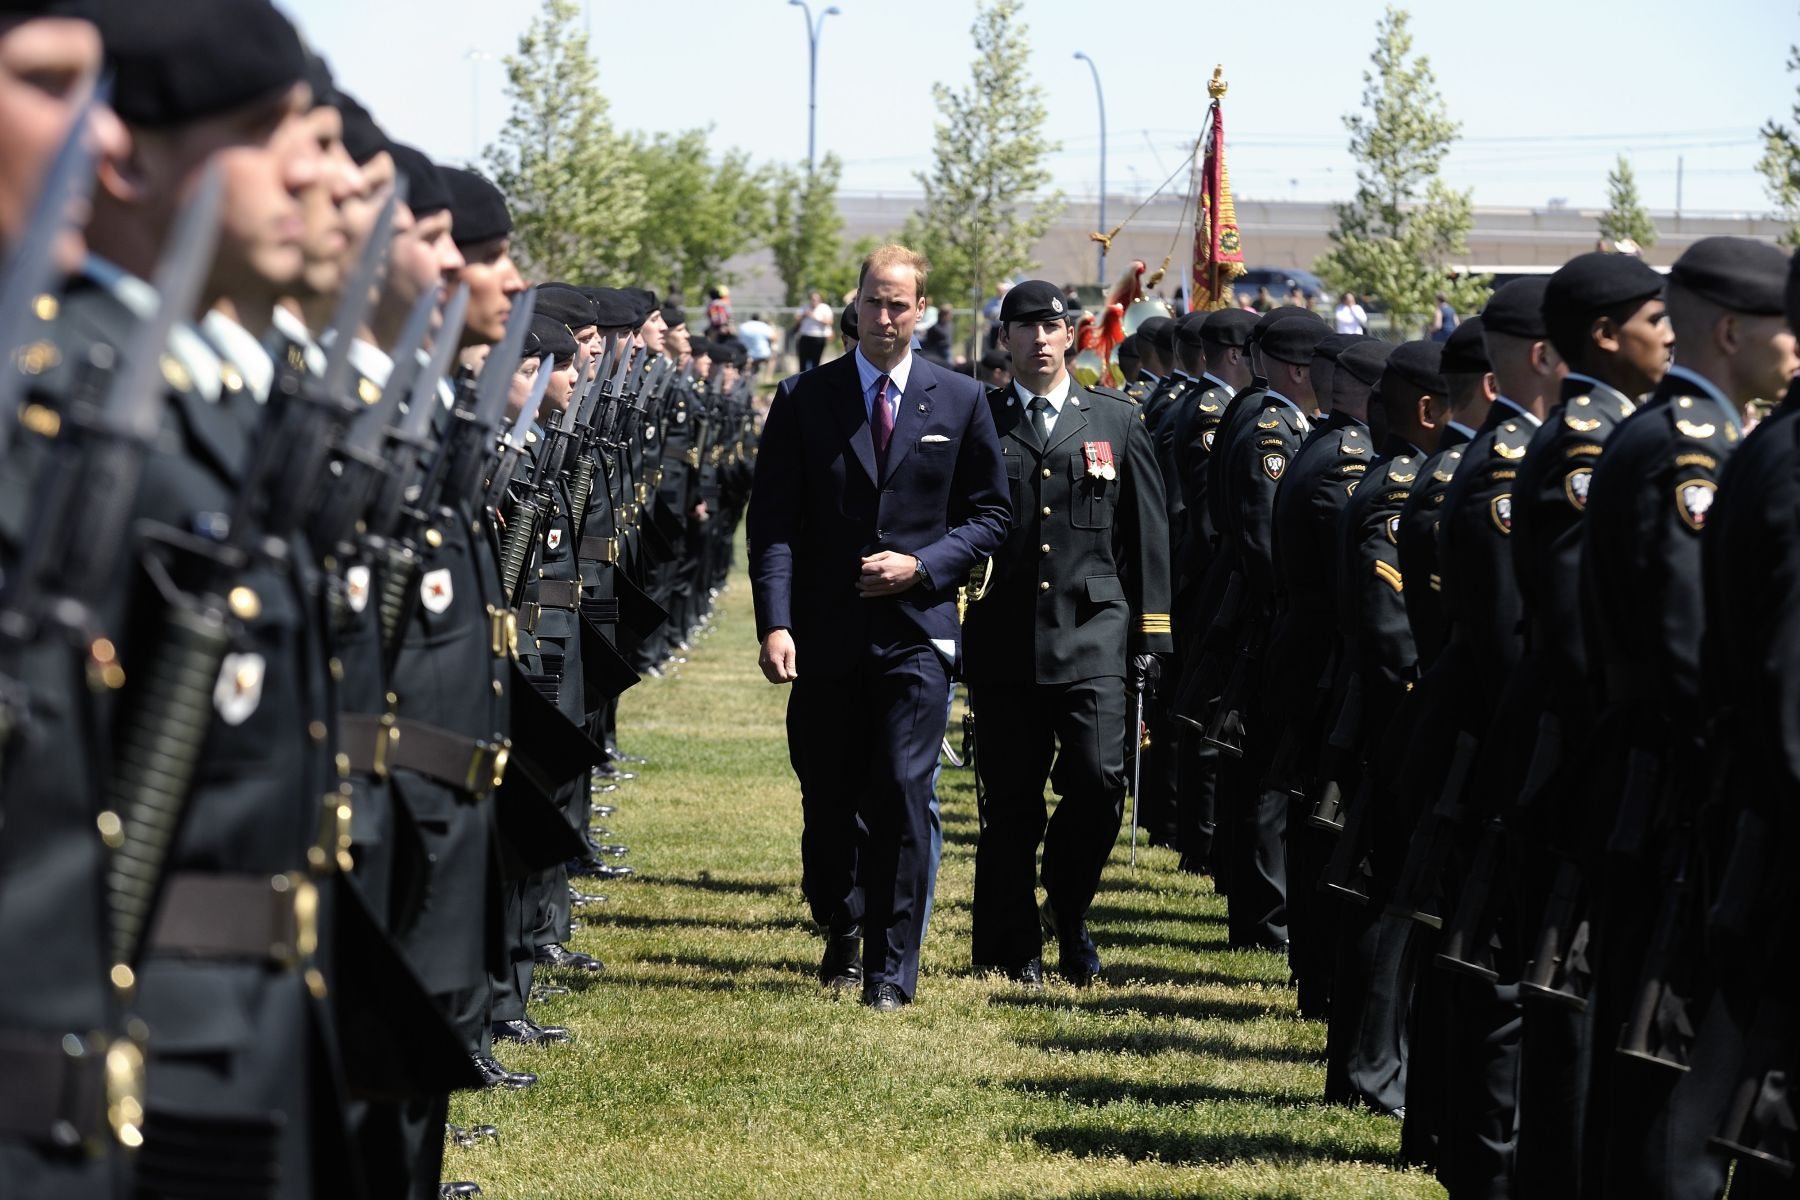 His Royal Highness conducted an inspection of the guard of honour.